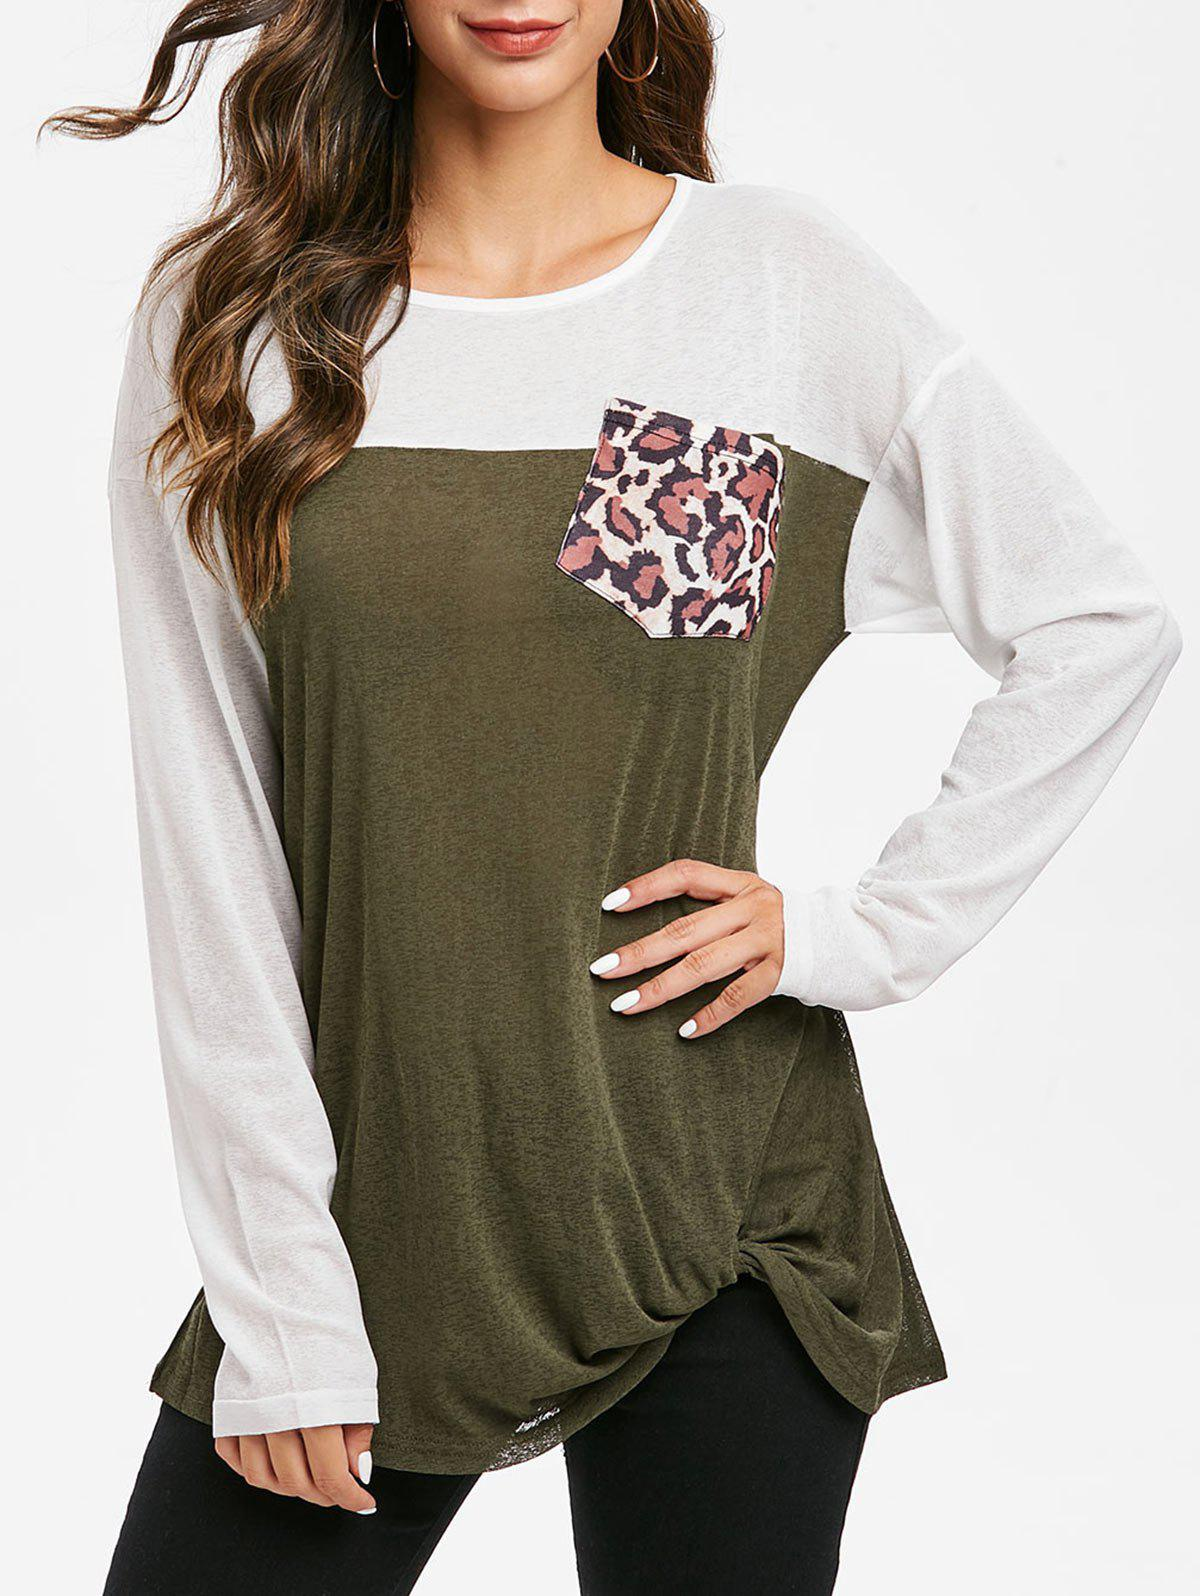 Leopard Pocket Colorblock Twist Knitted Top - CAMOUFLAGE GREEN XL